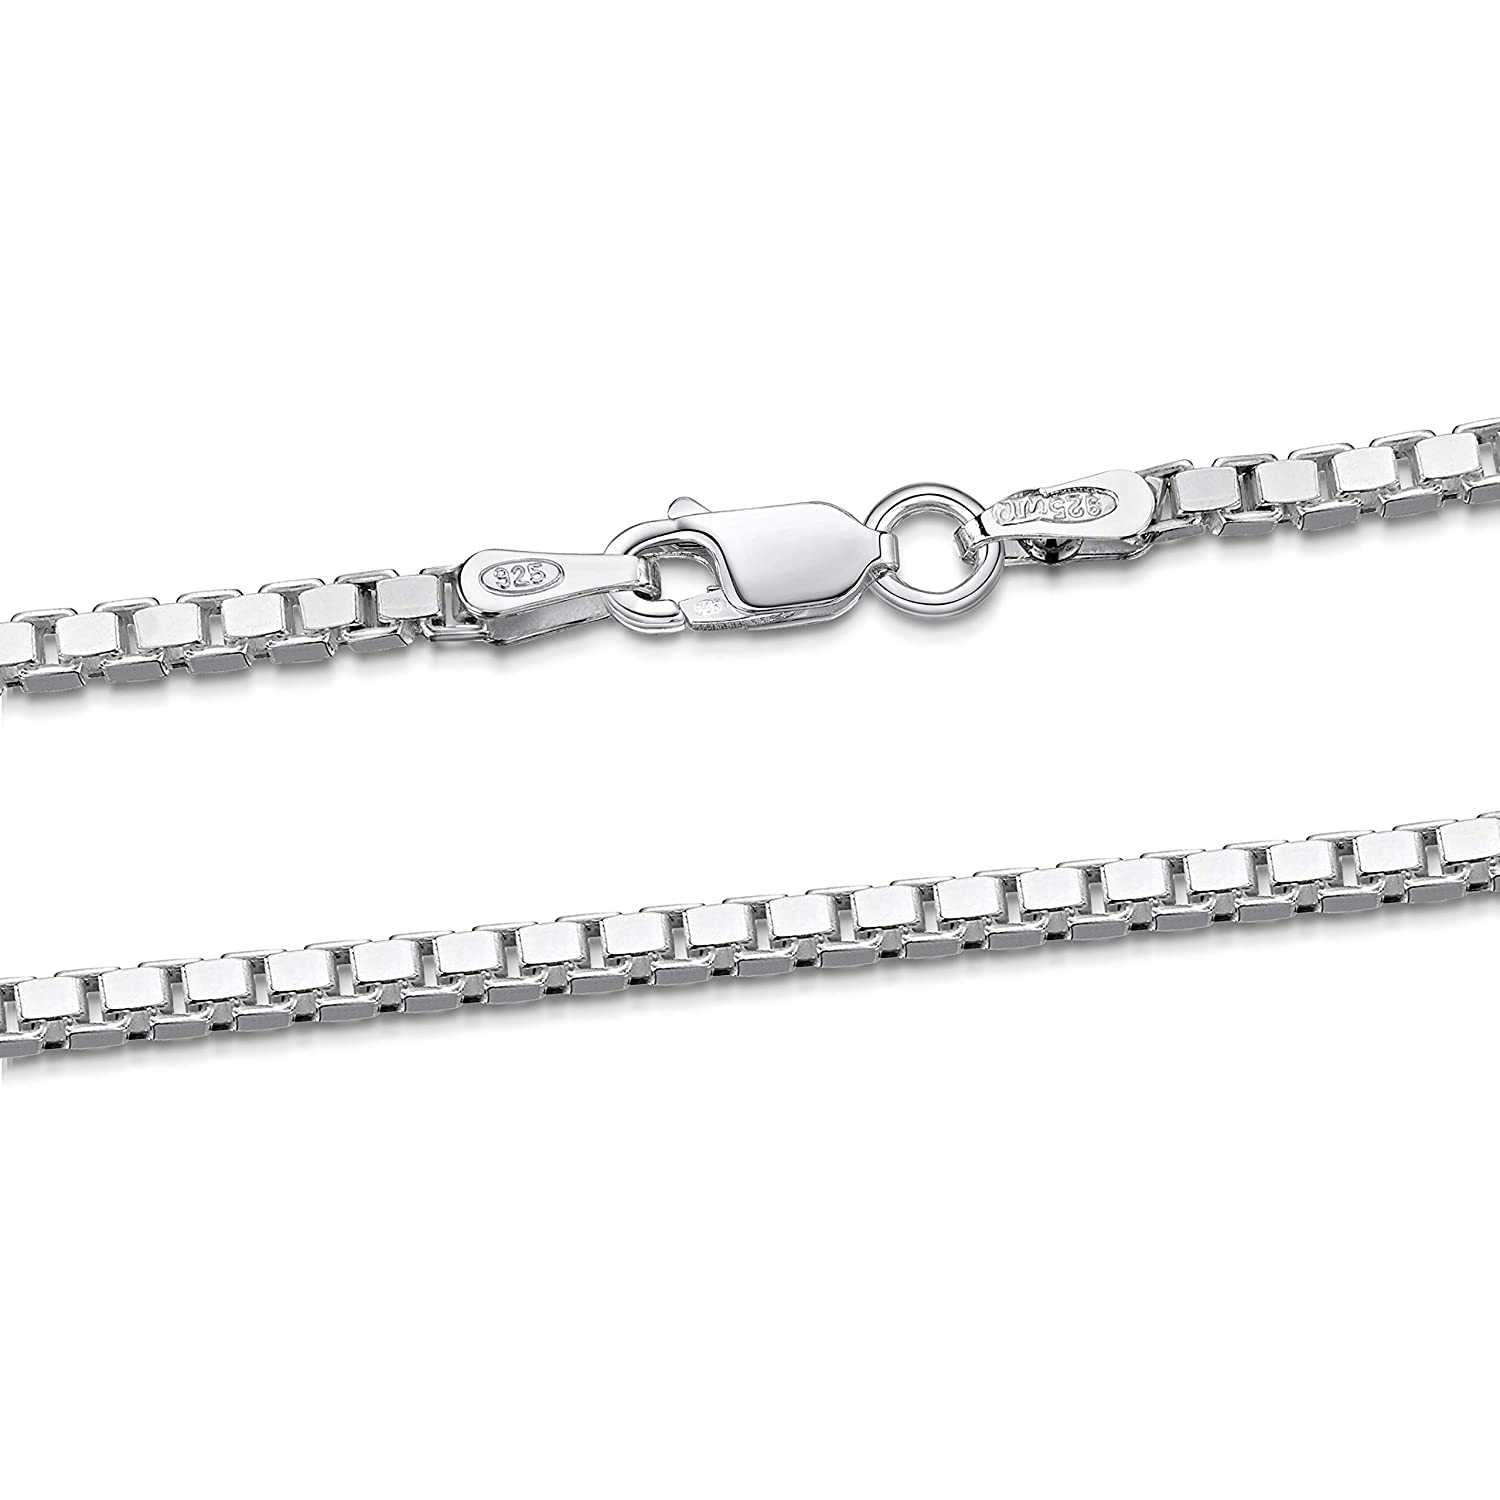 Amberta 925 Sterling Silver 2 mm Venice Box Chain Necklace Length 26 inch / 65 cm (26) BIA-S925-CHAIN-012-200-650